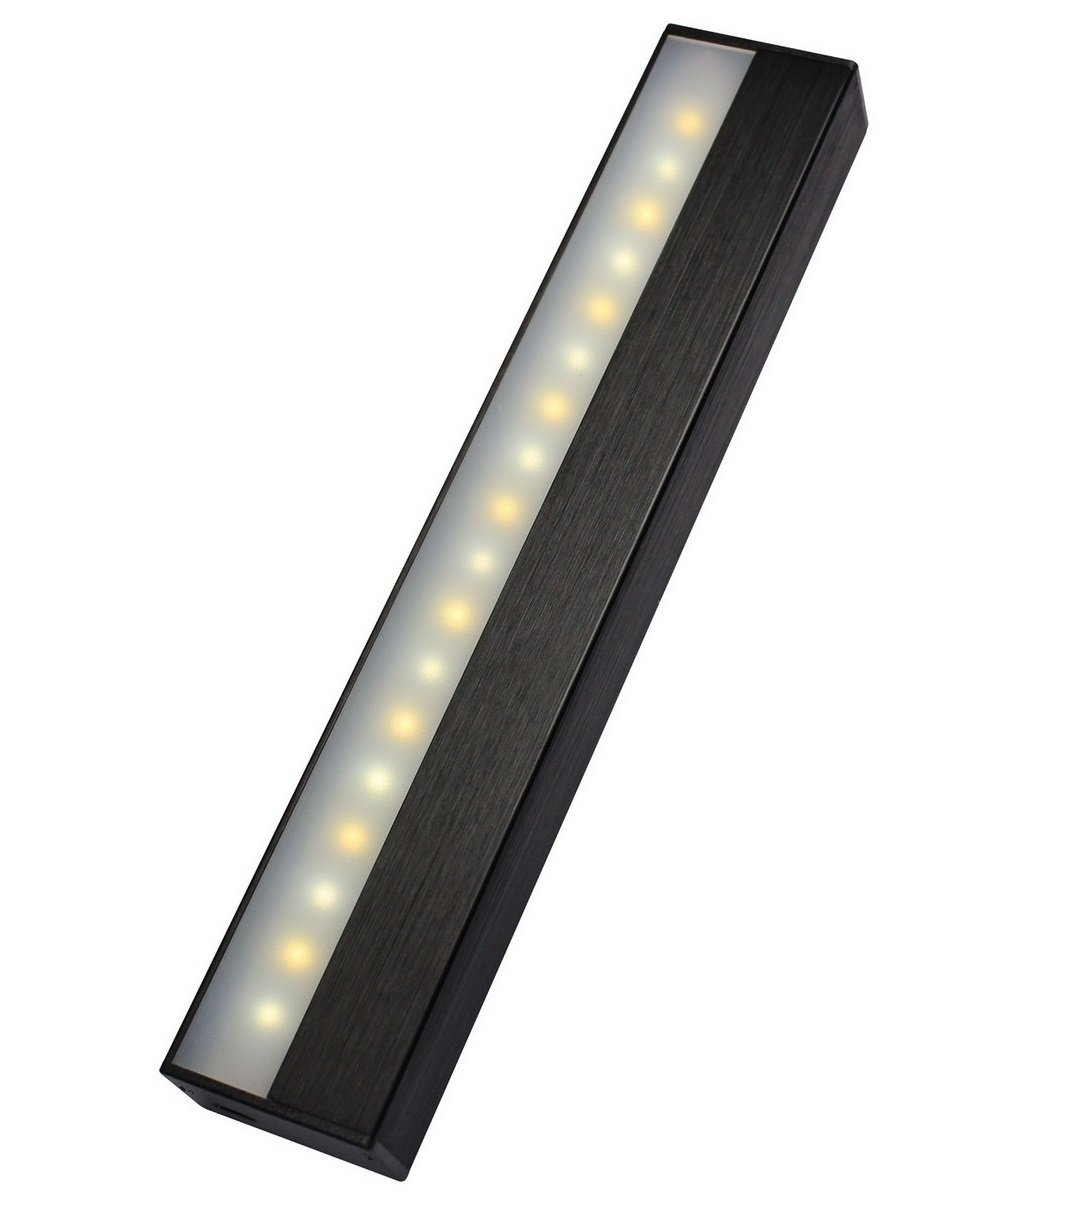 RTSU Touch Light, Rechargeable Wireless Magnetic Stick-on Anywhere Night Light Closet Lights Wardrobe Light, Dimmable LED Tap Light Bar Under Cabinet Lighting, Portable Push Light, Under Desk Lamp